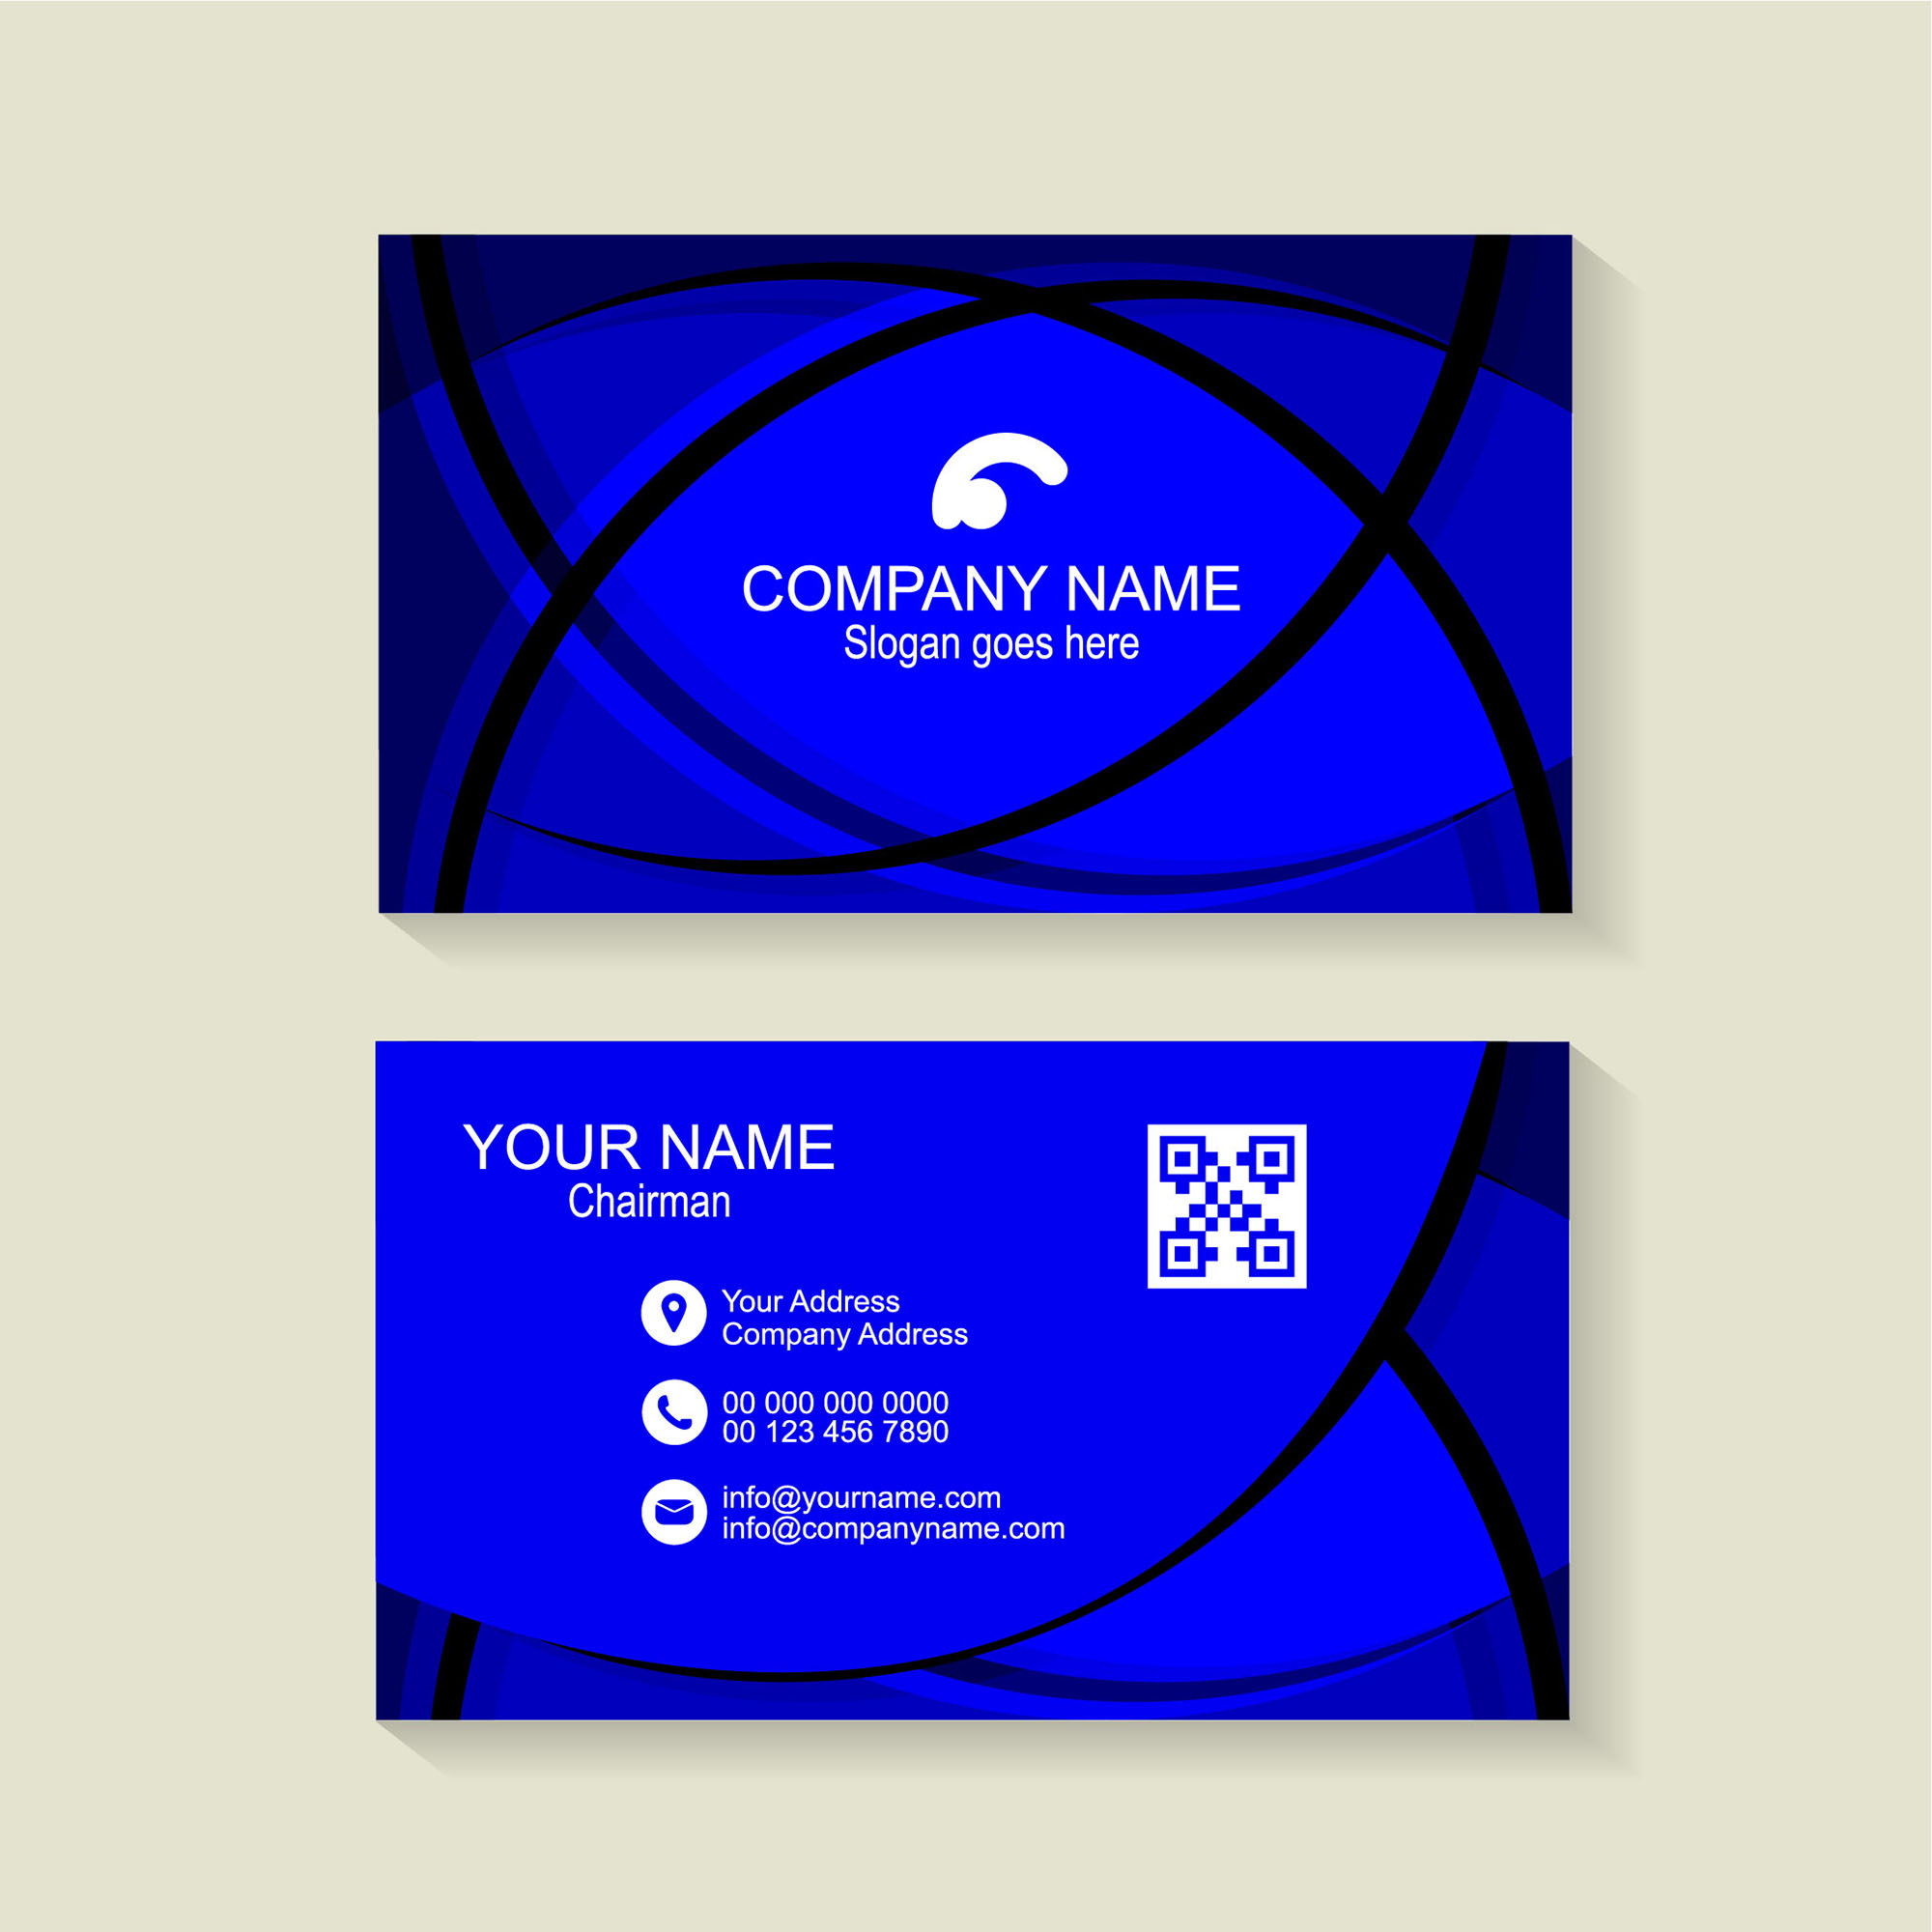 Blue business card background free download wisxi business card business cards business card design business card template design templates reheart Gallery